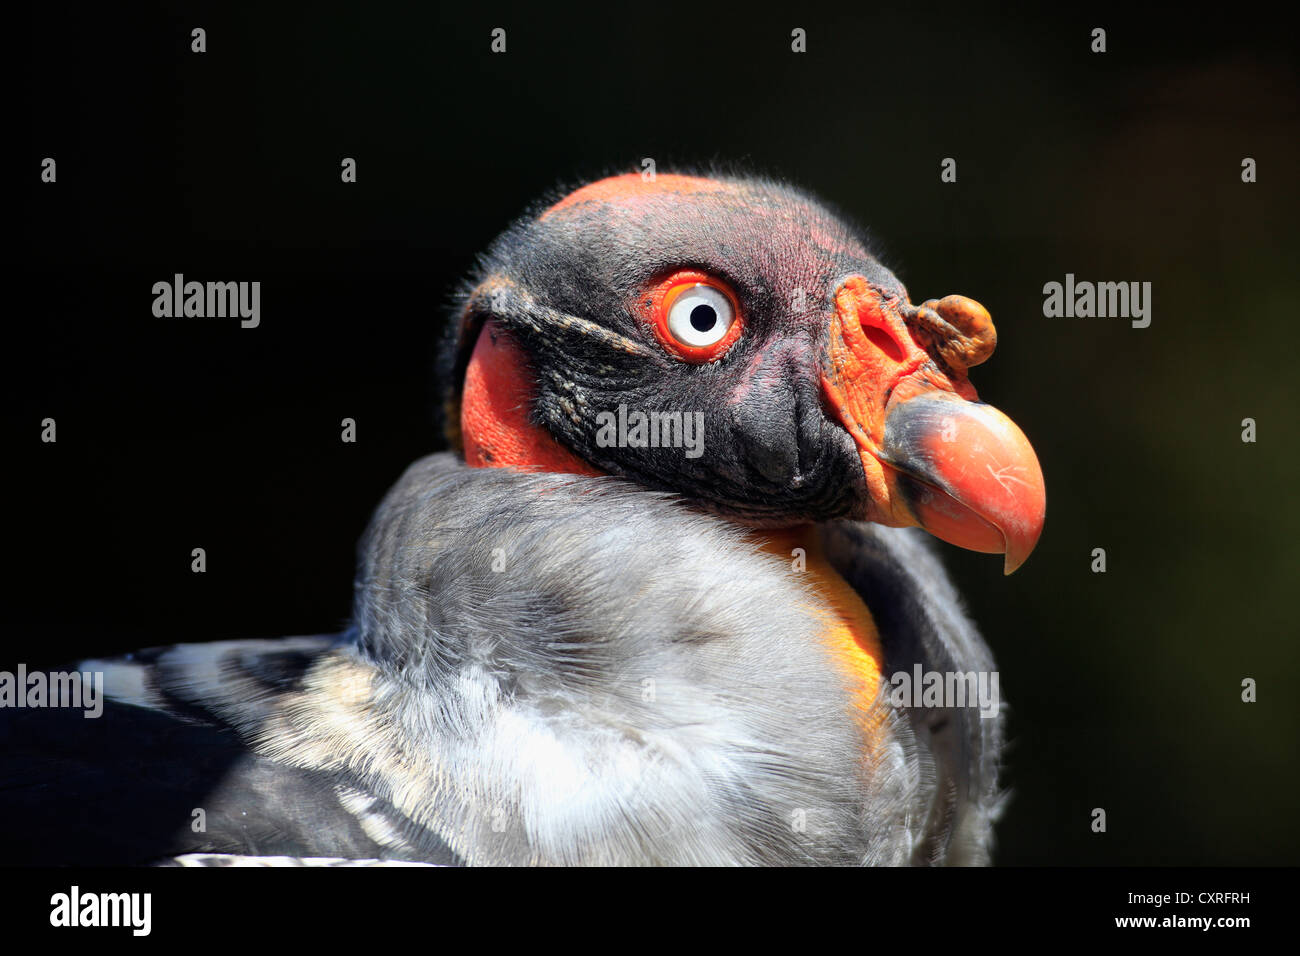 King Vulture (Sarcoramphus papa), adult, portrait, Cape Town, South Africa, Africa - Stock Image